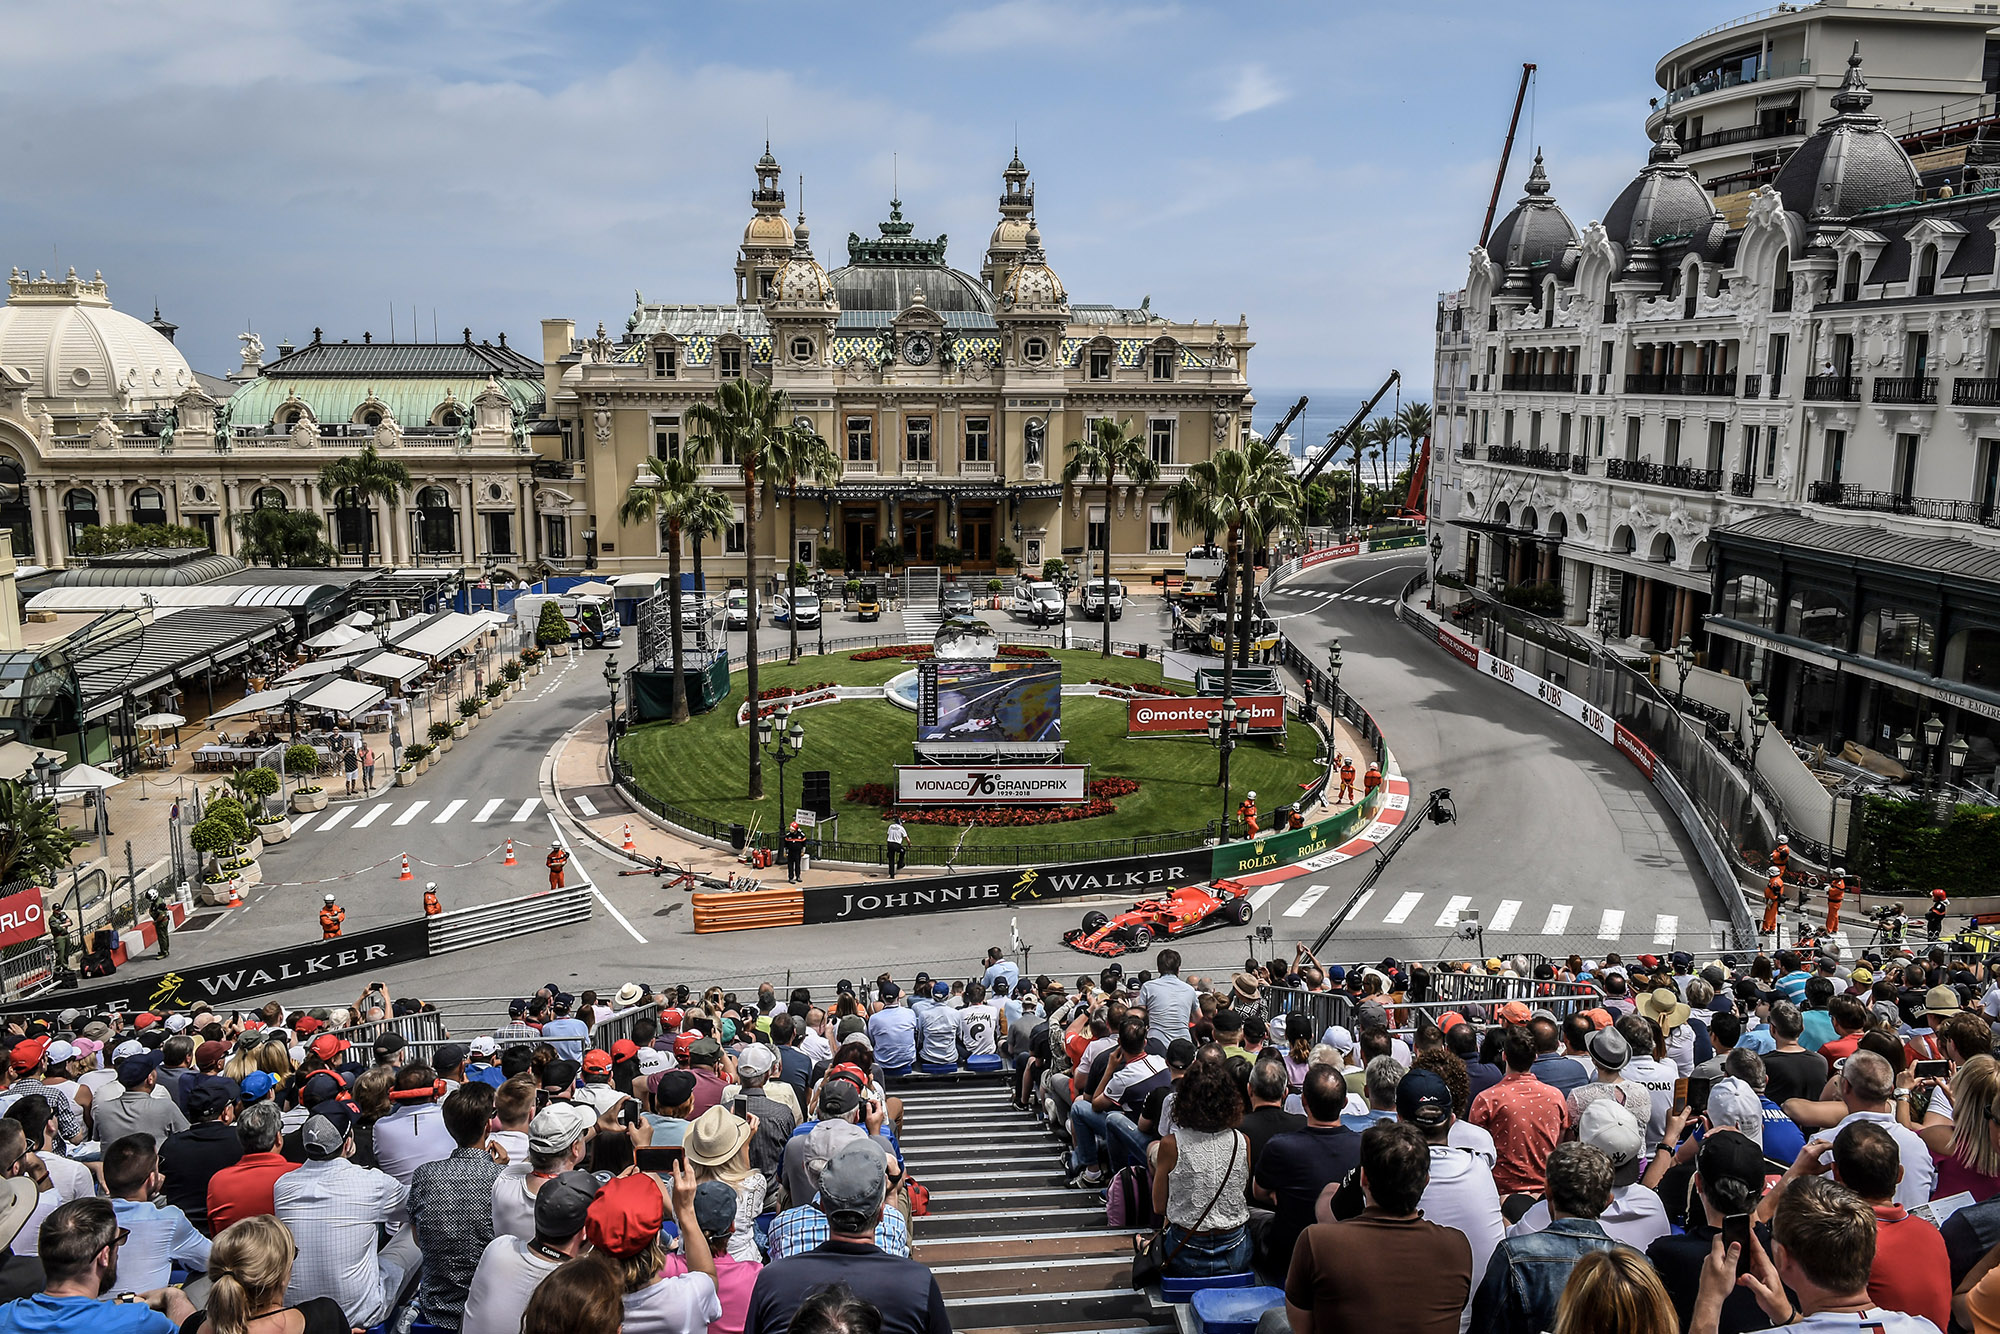 2018 Monaco Grand Prix Kimi Raikkonen in Casino Square